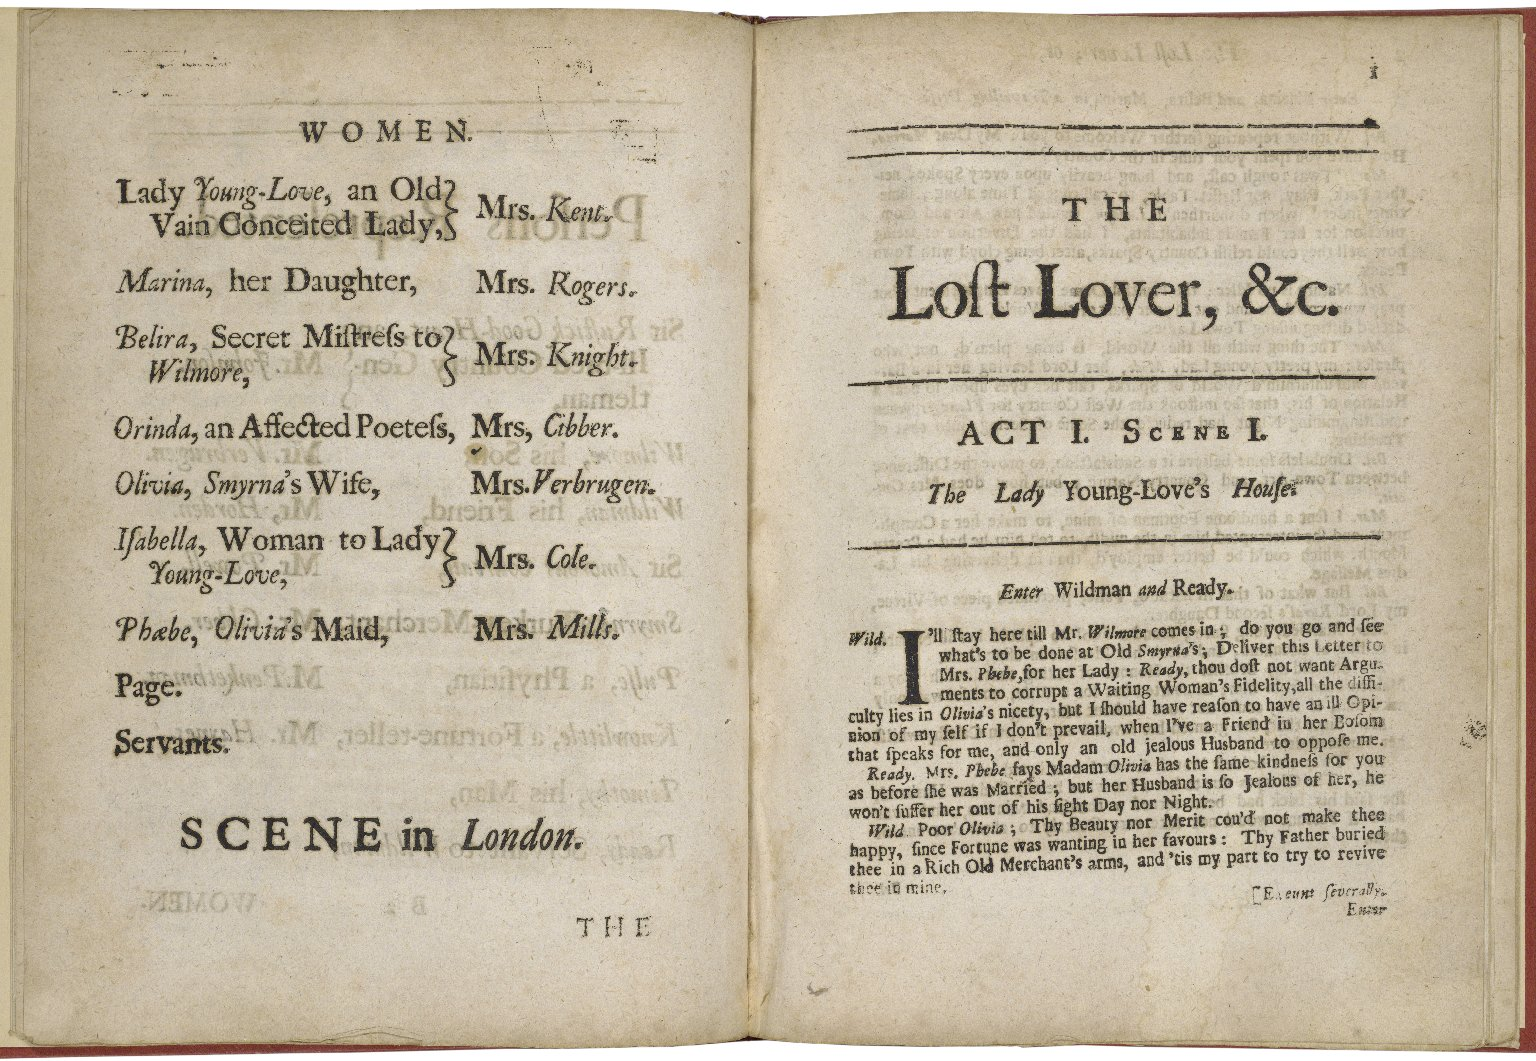 The lost lover; or, the jealous husband: a comedy. As it is acted at the Theatre Royal by His Majesty's Servants. Written by Mrs. Manley.